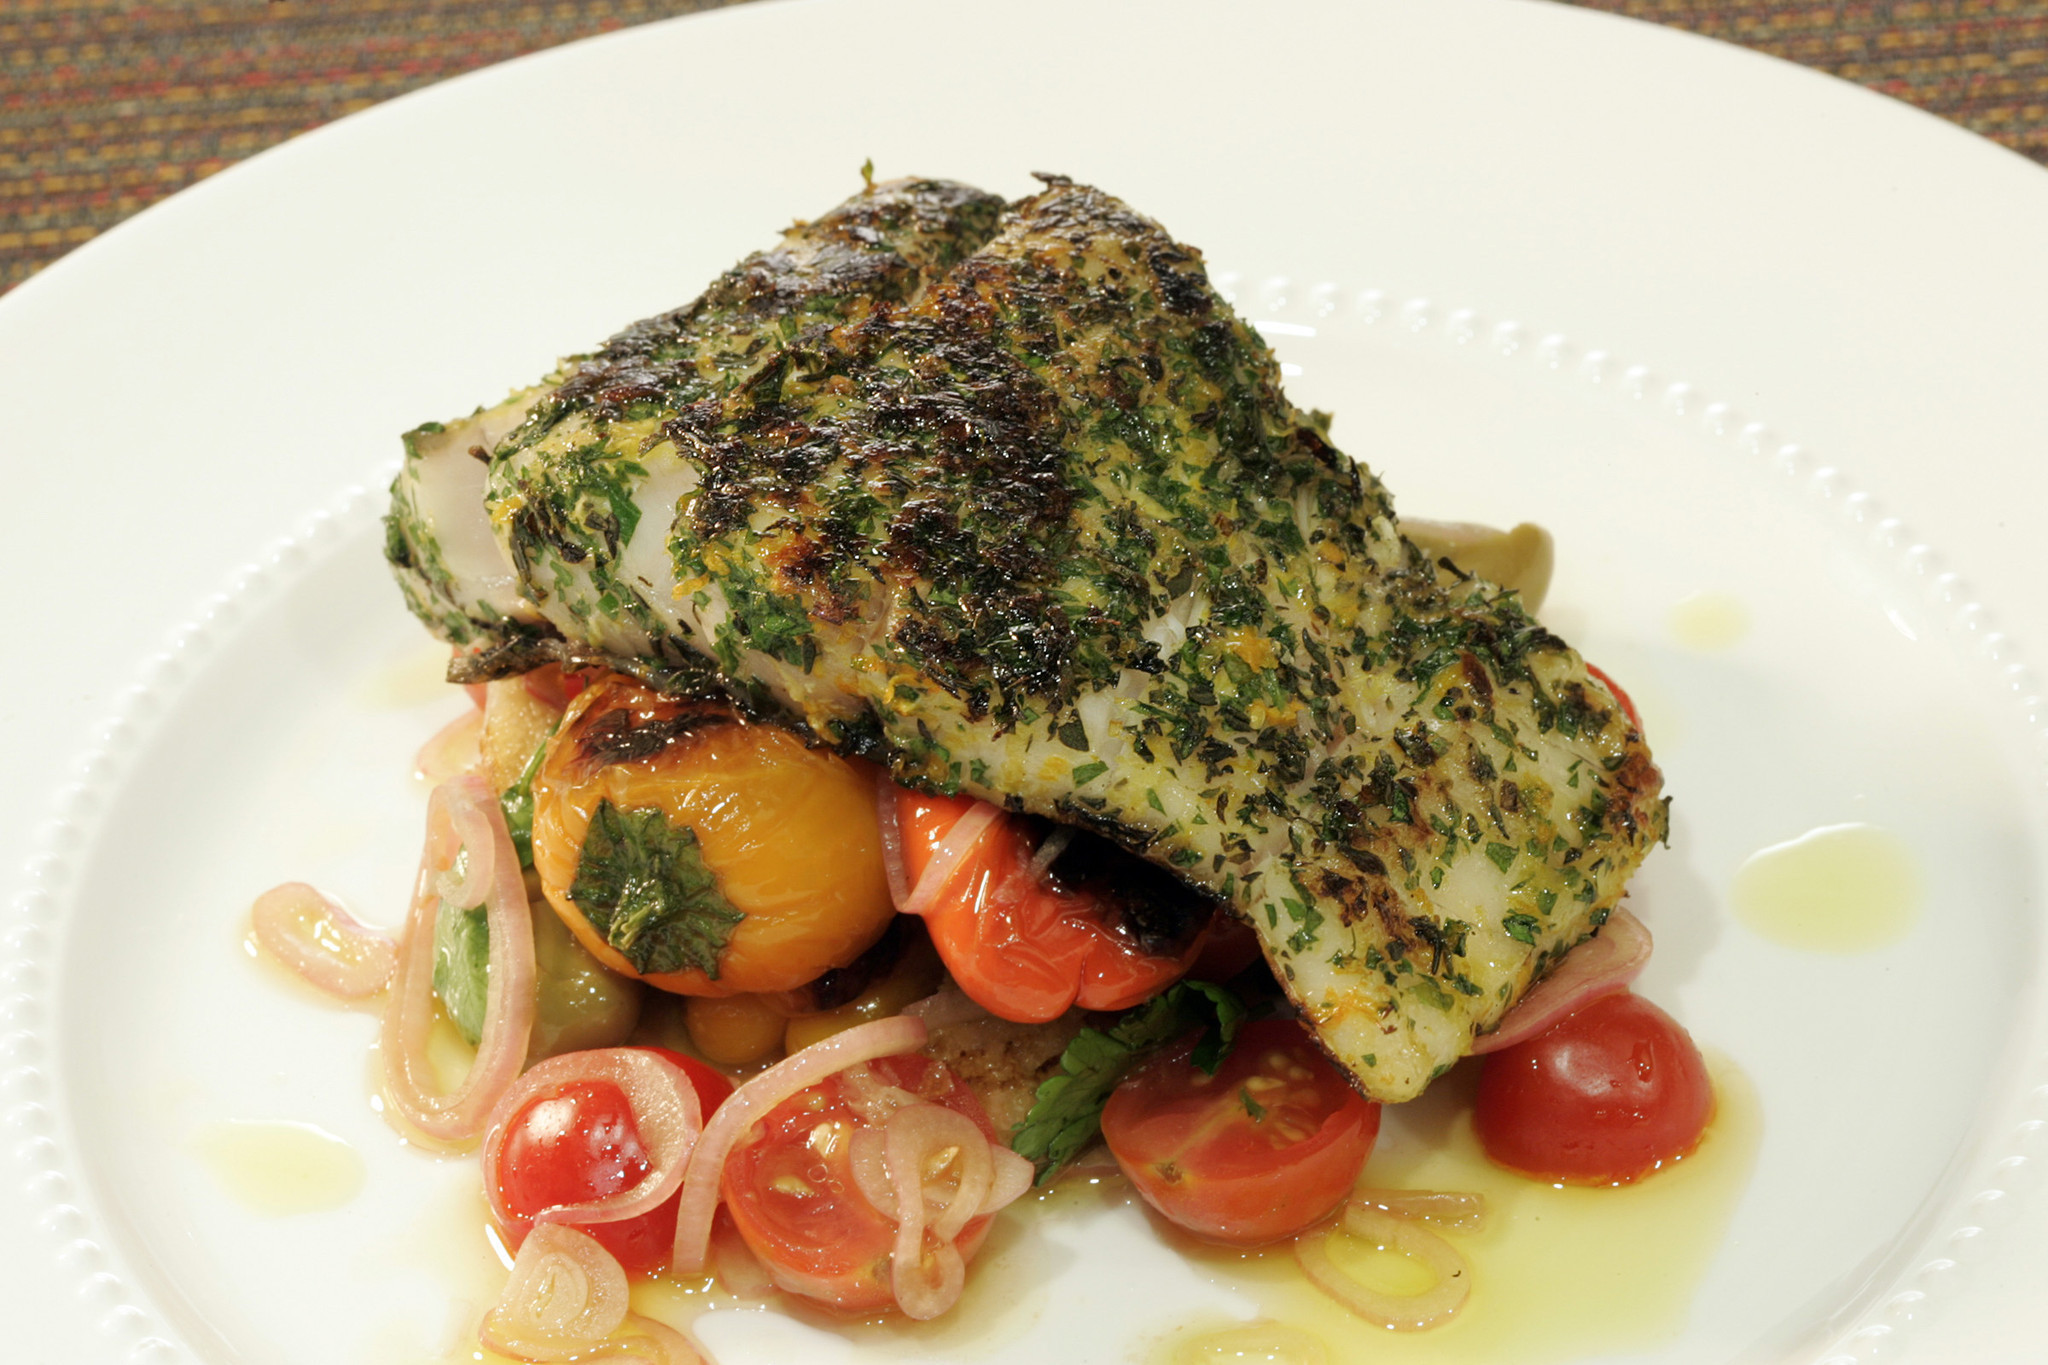 11 great fish recipe ideas under 400 calories la times for Great fish recipes